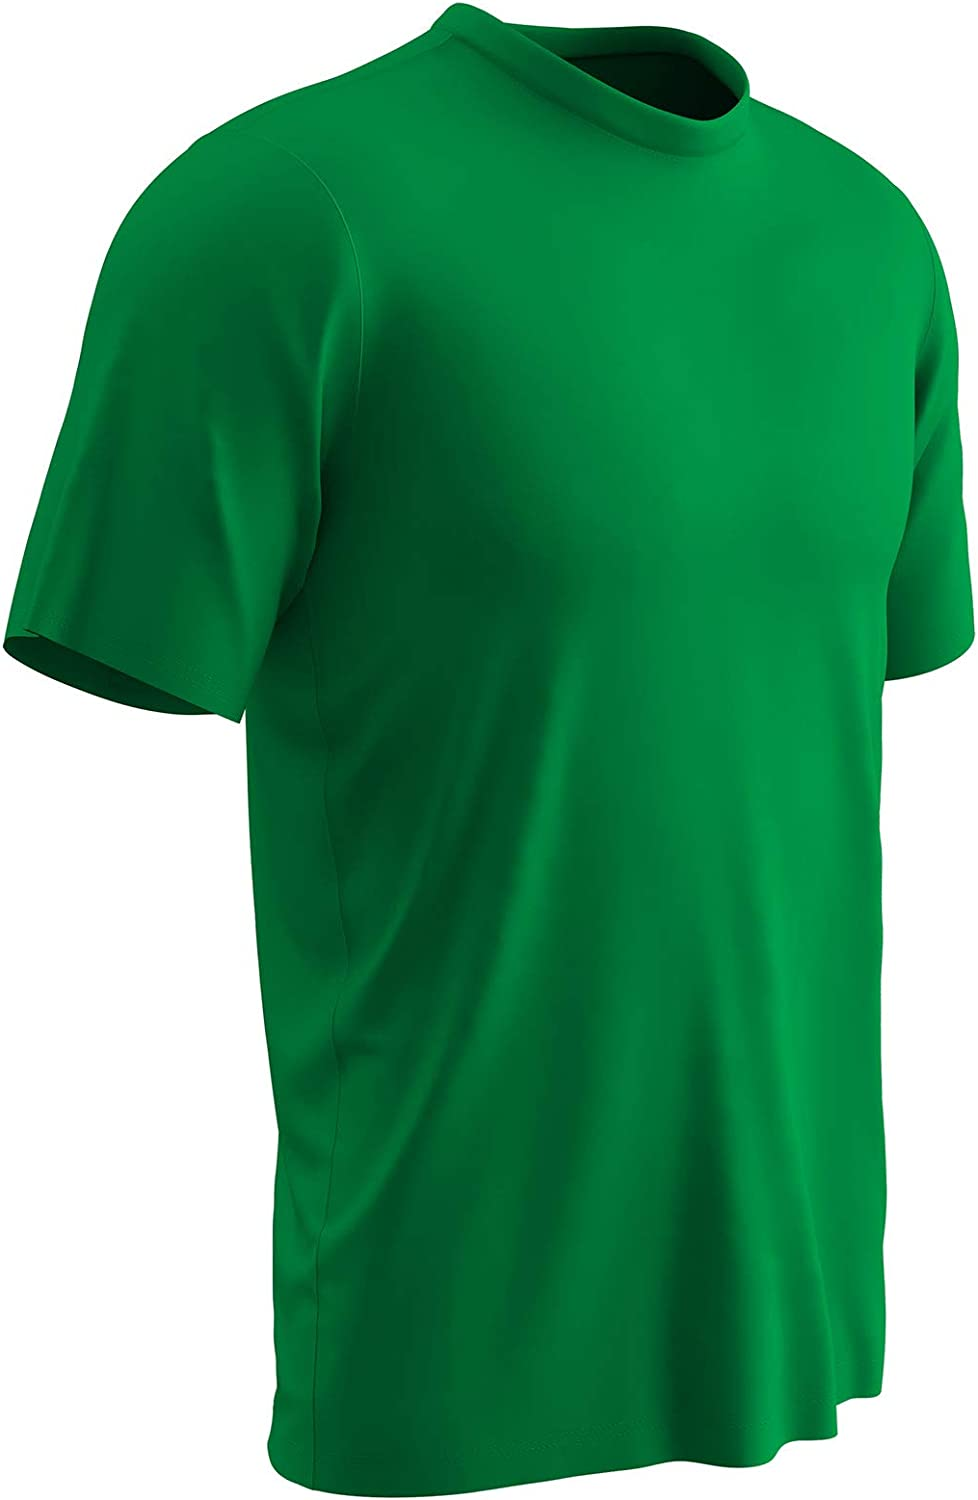 CHAMPRO Vision Lightweight Polyester T-Shirt Jersey Adult 4X-Large Neon Green